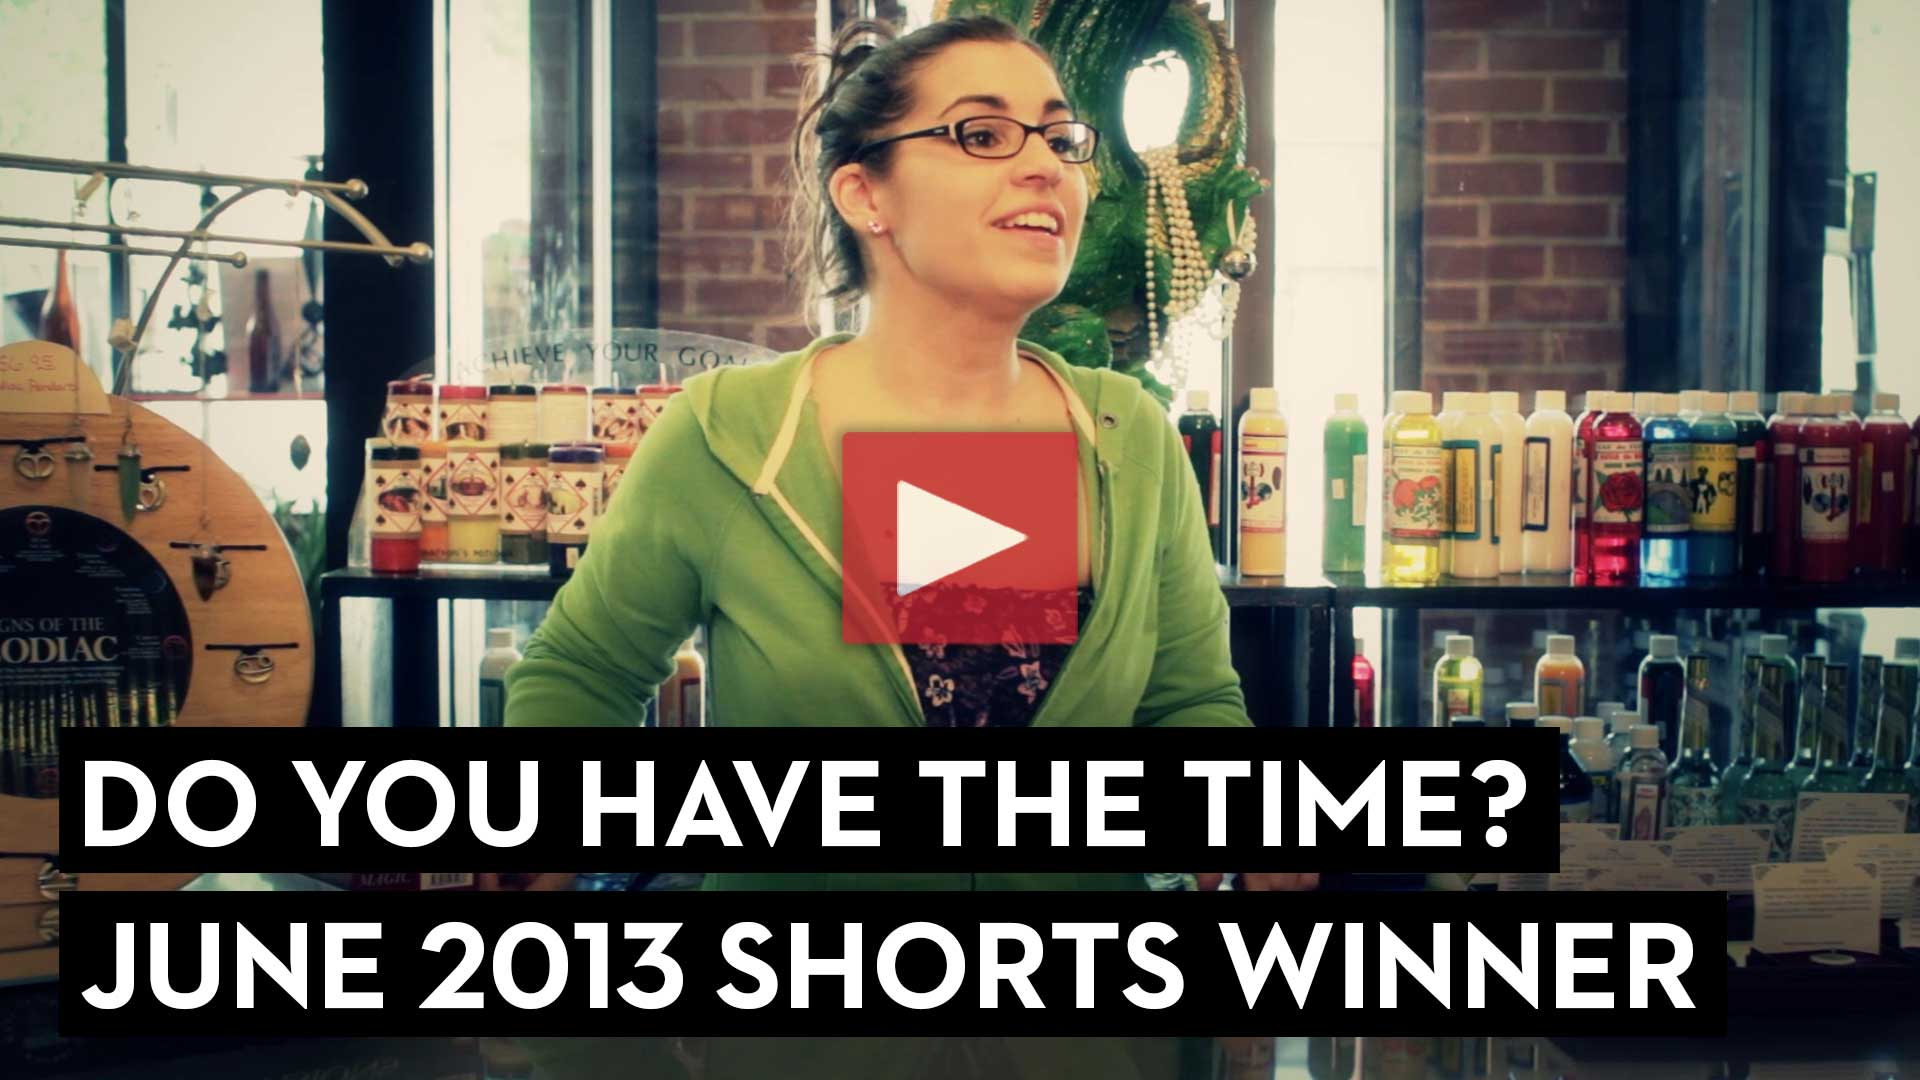 Do You Have the Time? - Second City Shorts Winner 6/13